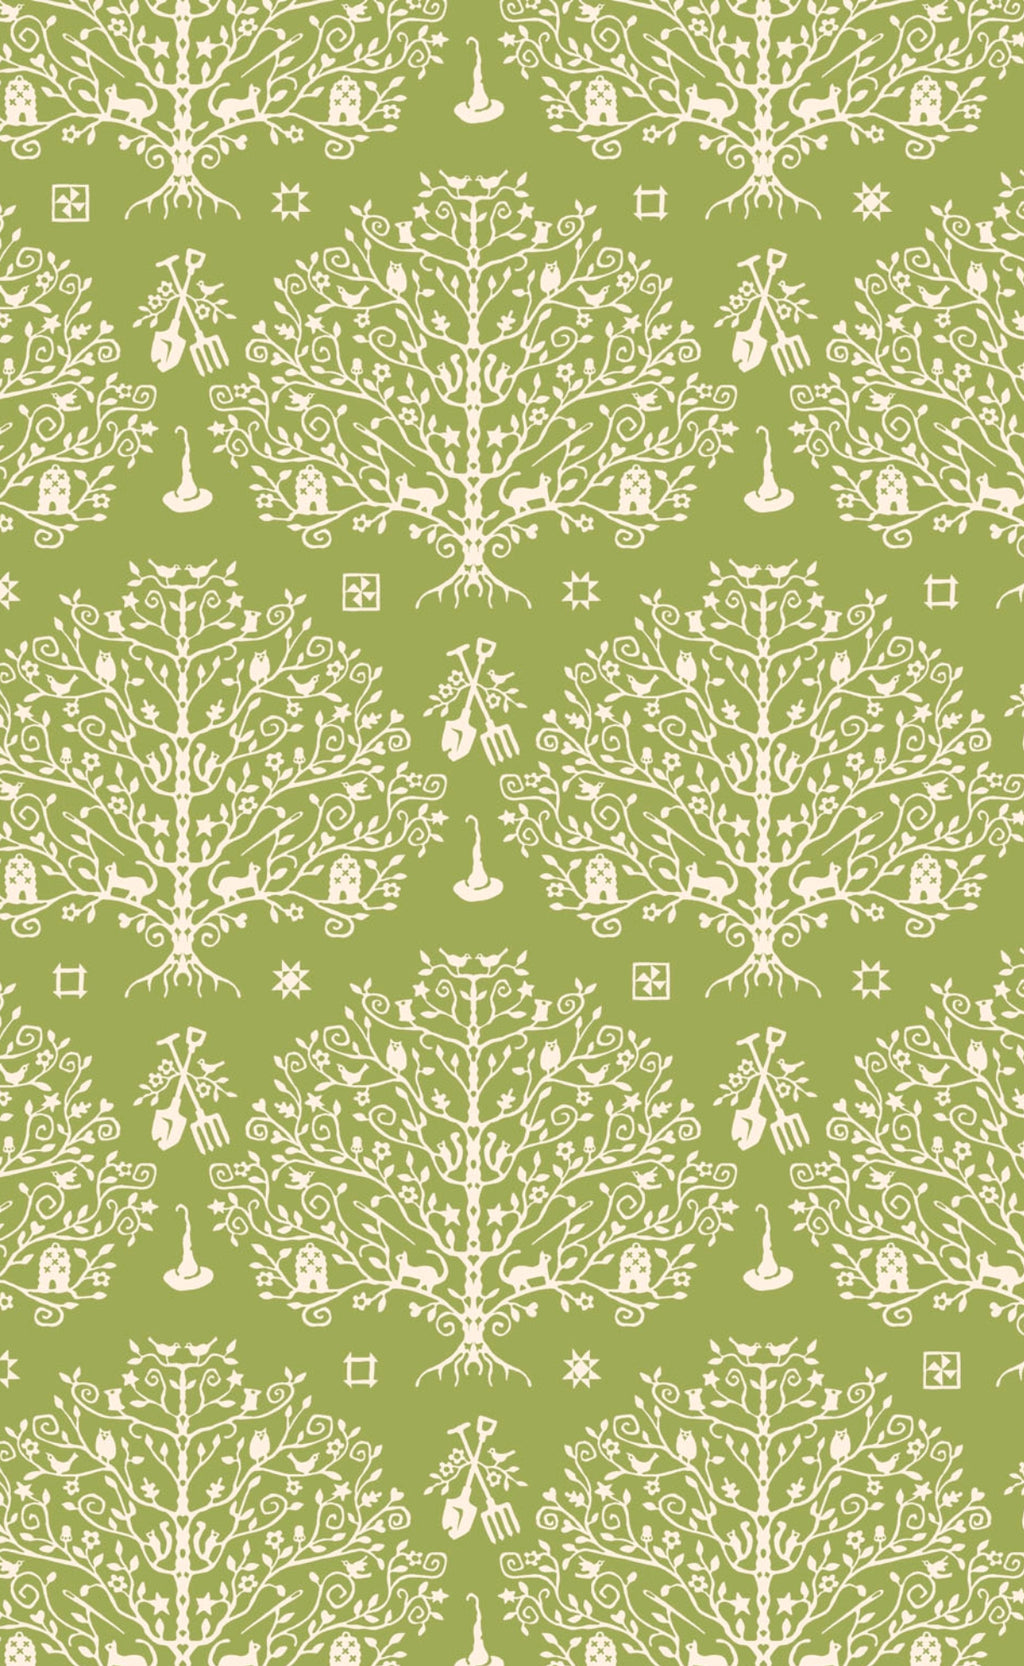 PAPER CUT TREE - GREEN from the Spellcasters Garden Fabric Line, Toad Hollow Fabrics